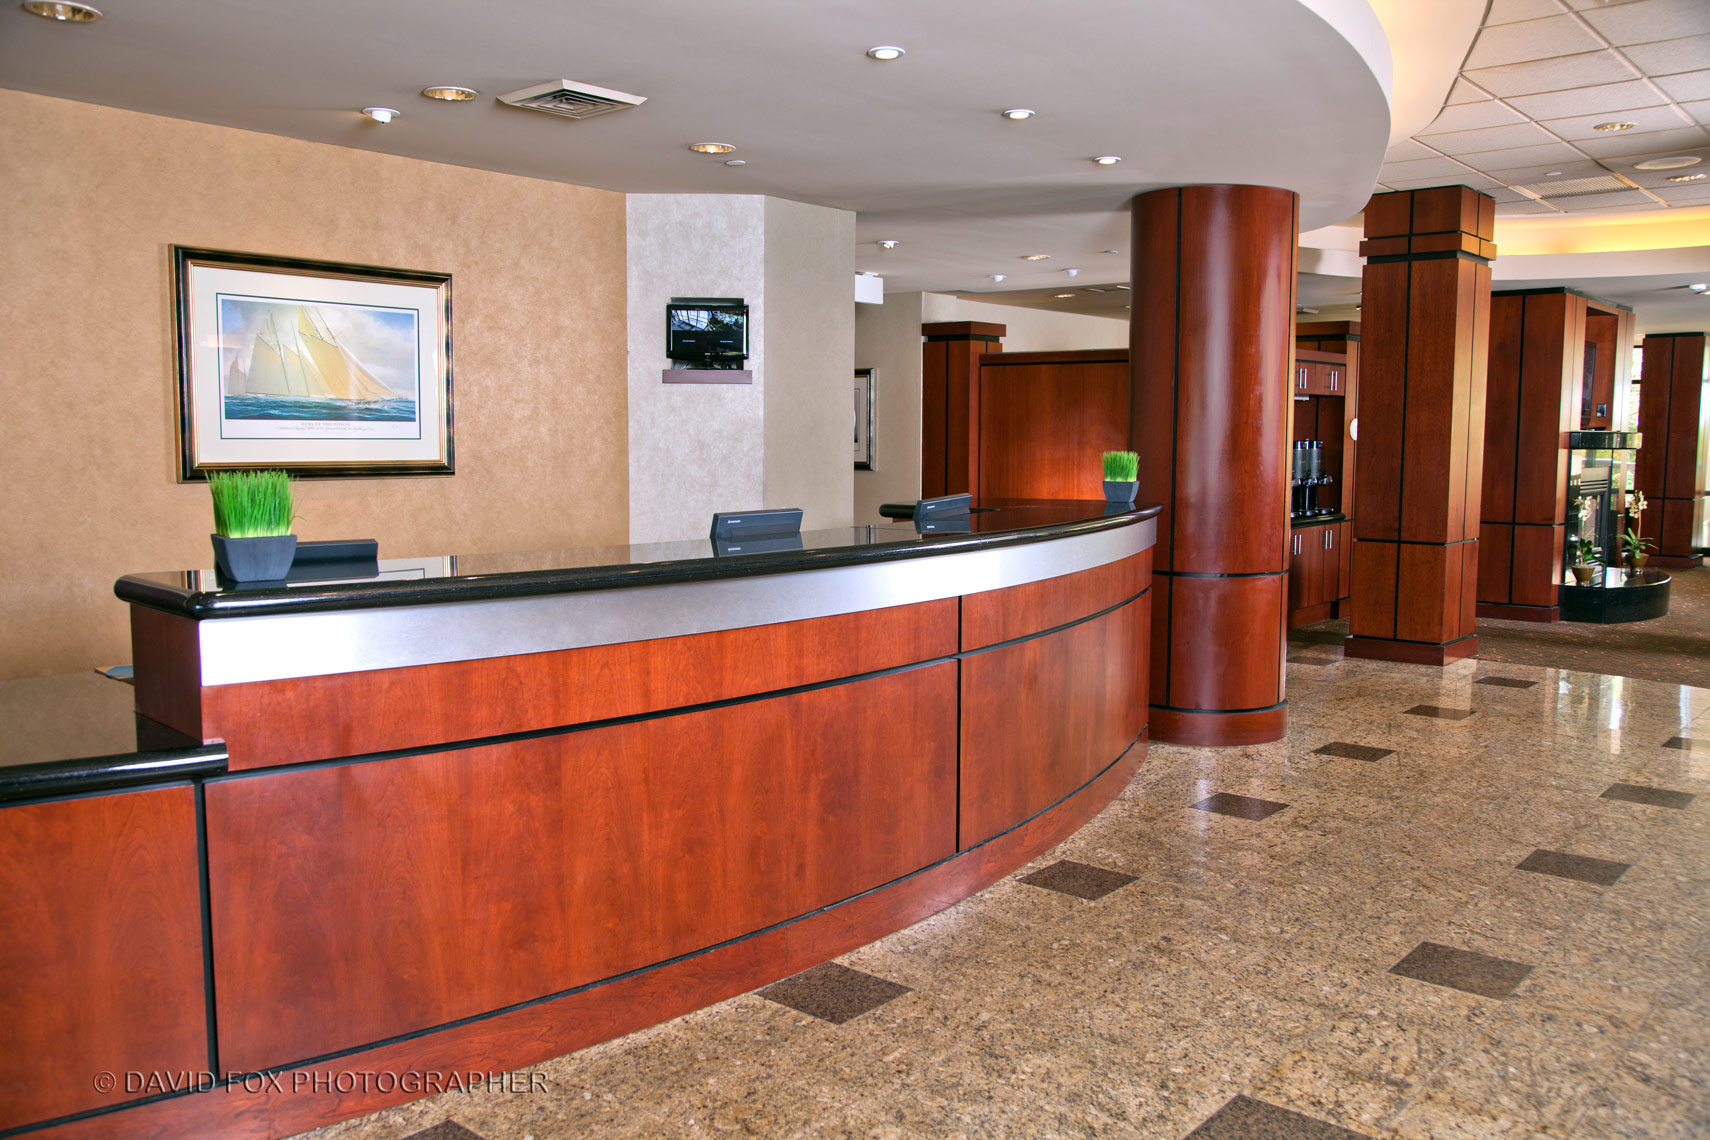 Hotel Reception Desk of the Marriott Natick